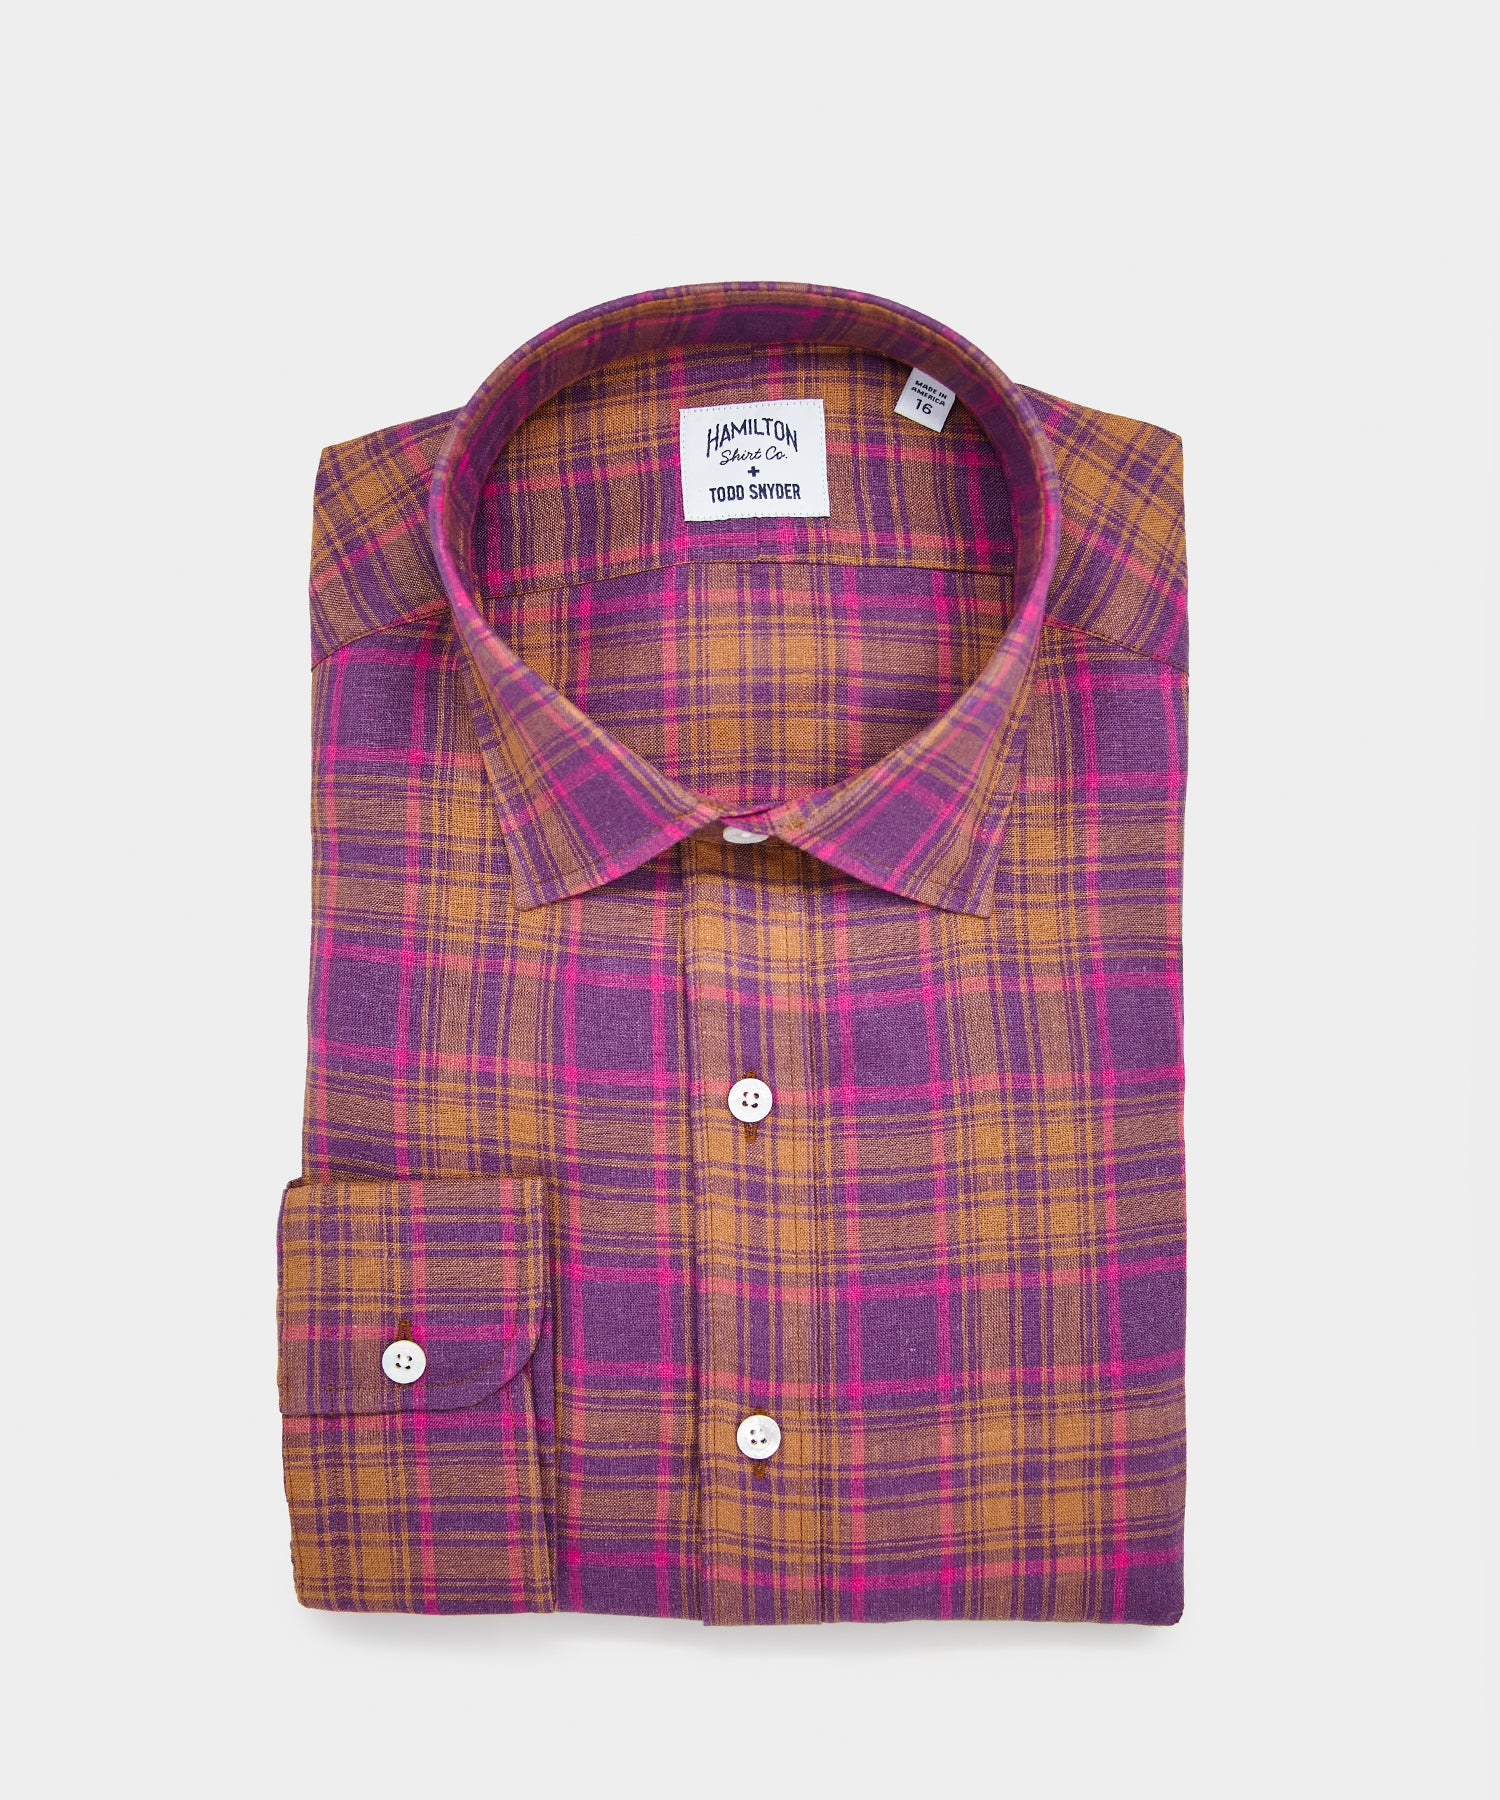 Made in USA Hamilton + Todd Snyder Purple Madras Dress Shirt